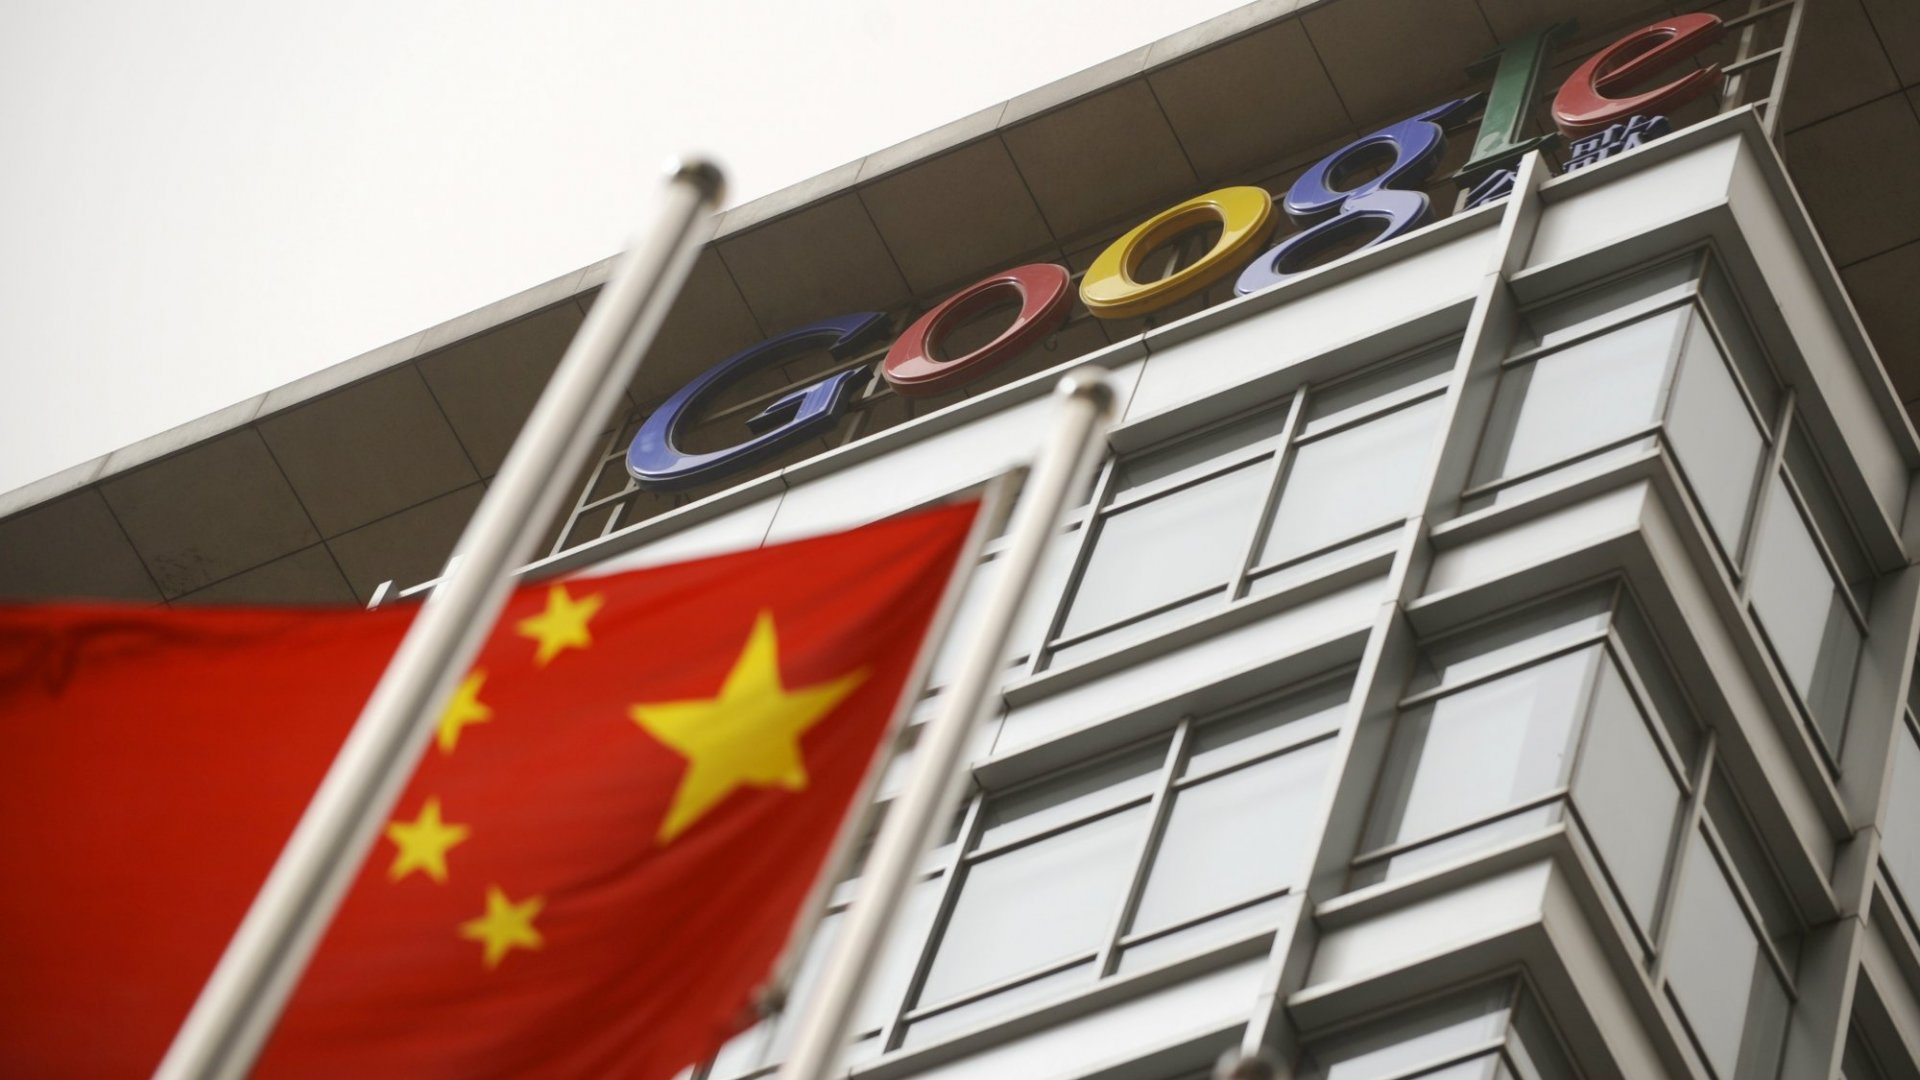 Google Has Effectively Shuttered Project Dragonfly, Its Planned Chinese Censored Search Engine